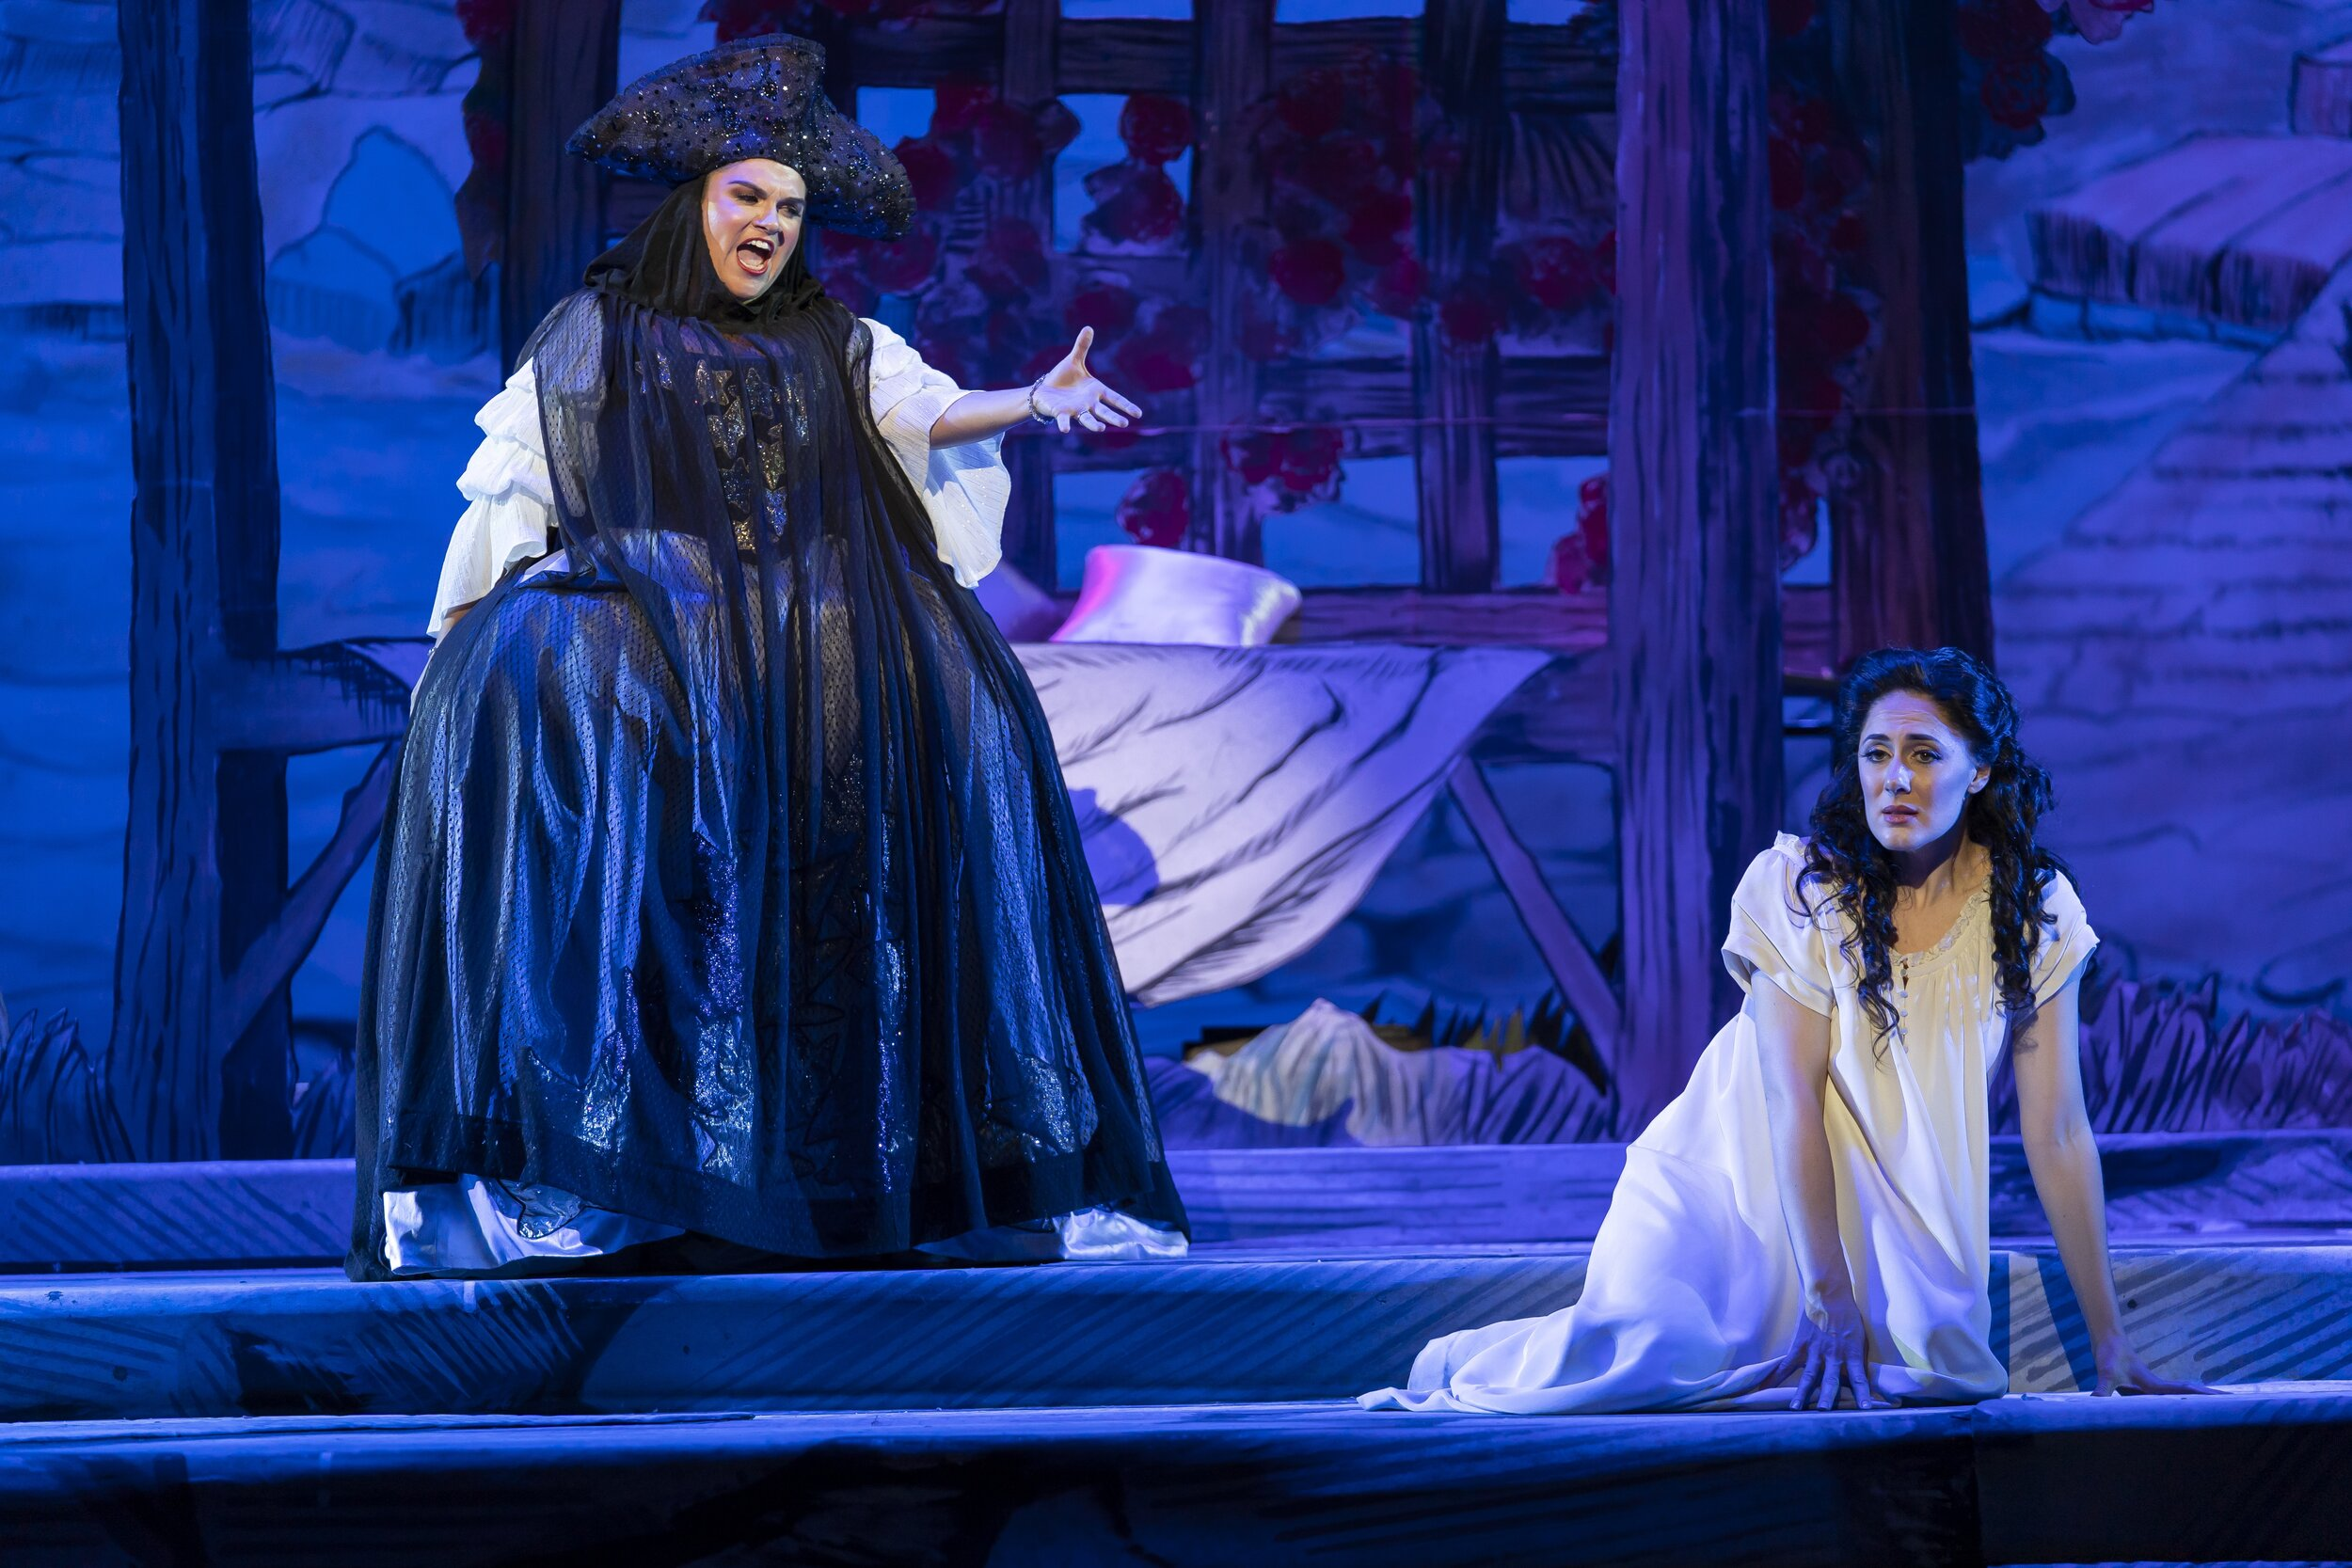 l to r : Kathryn Lewek as the Queen of the night and Sydney Mancasola as Pamina. Photo by Scott Suchman; courtesy of Washington National Opera.